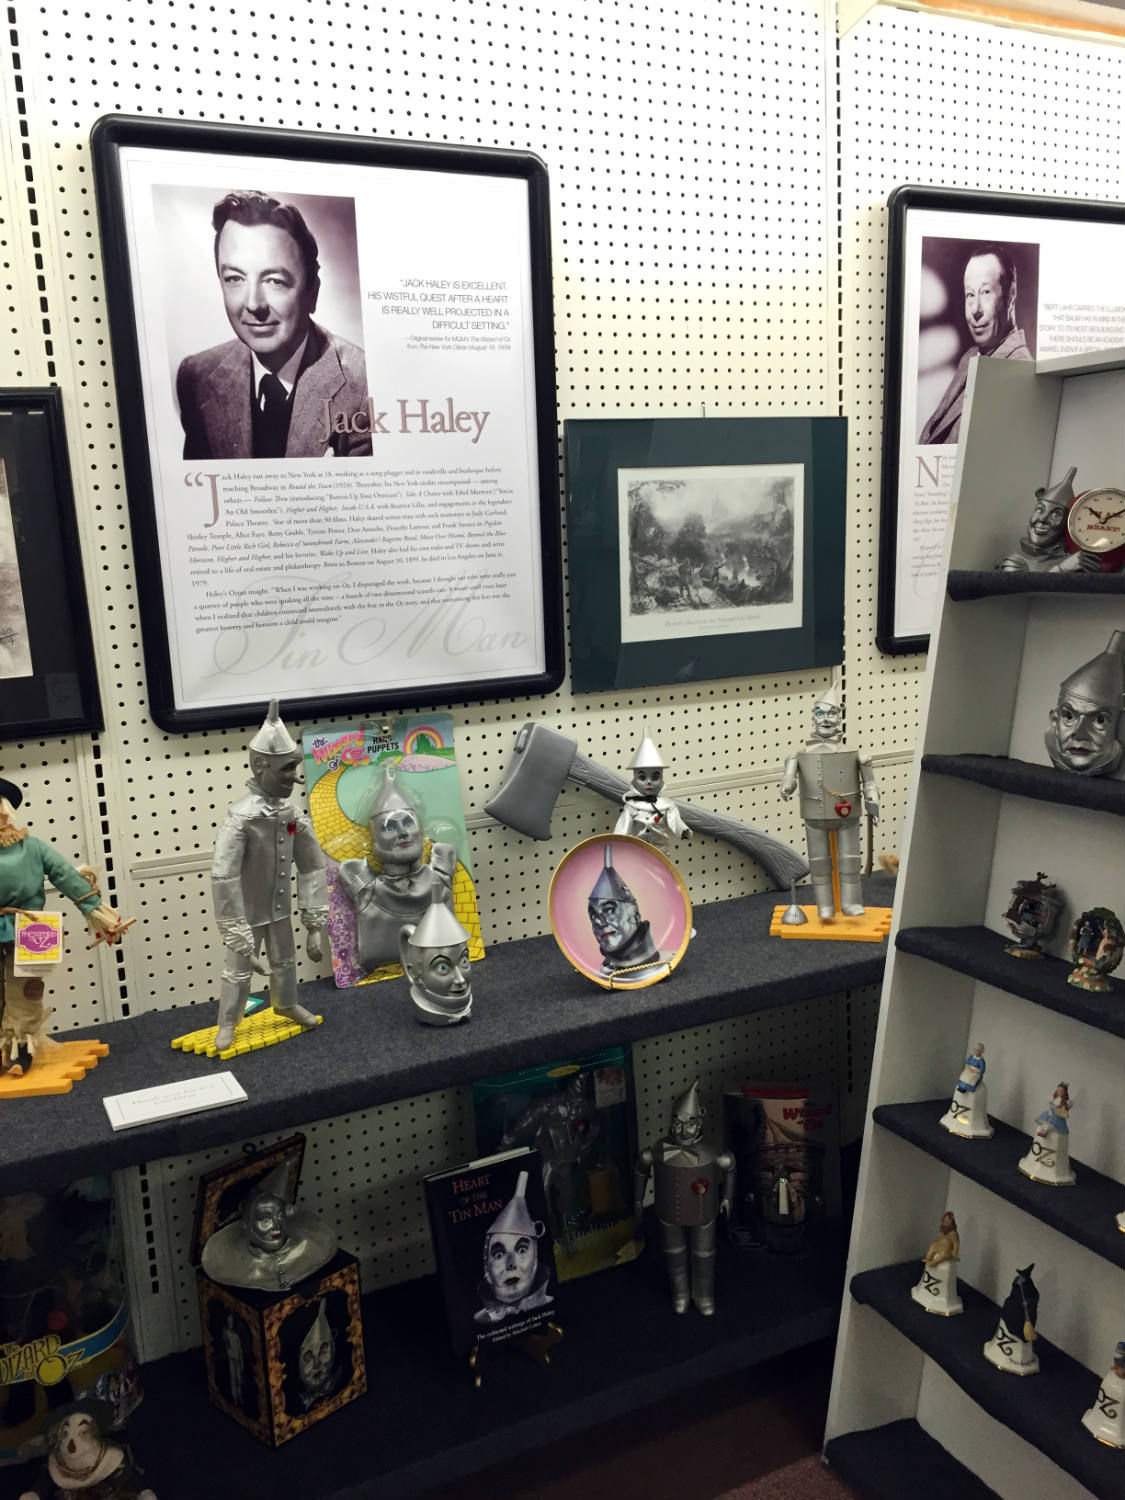 Jack Haley Display at the All Things Oz Museum in Chittenango, New York